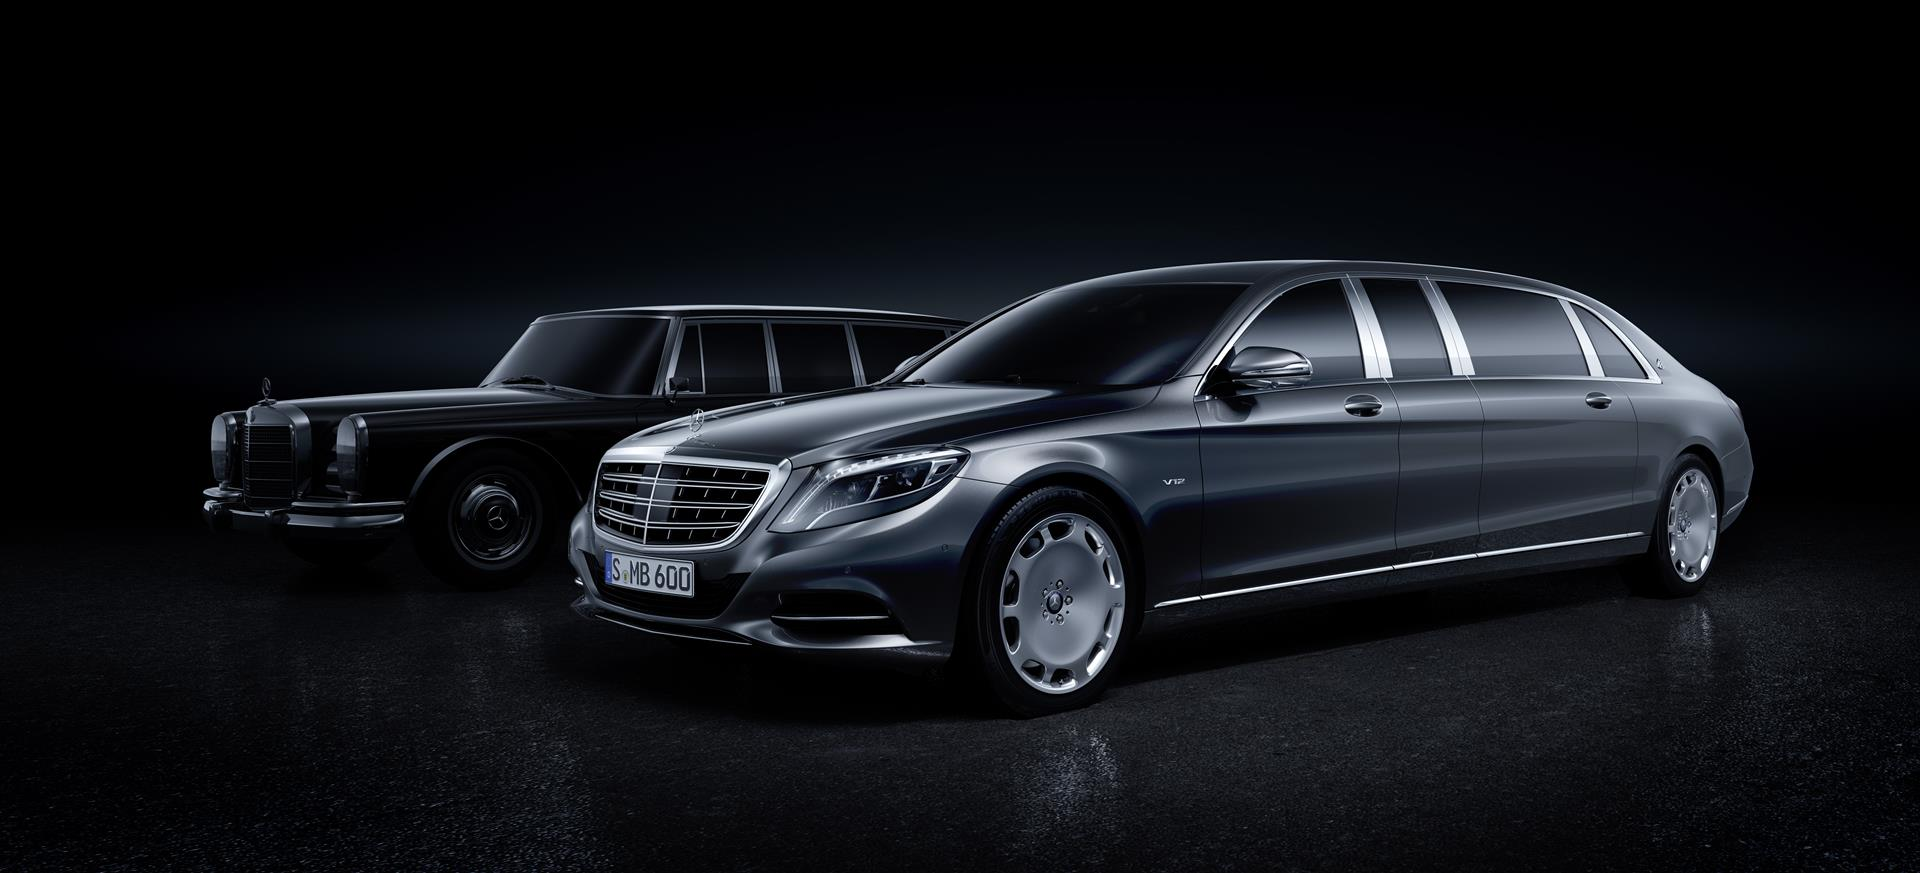 Toyota Of Pullman >> 2015 Mercedes-Benz Maybach Pullman News and Information